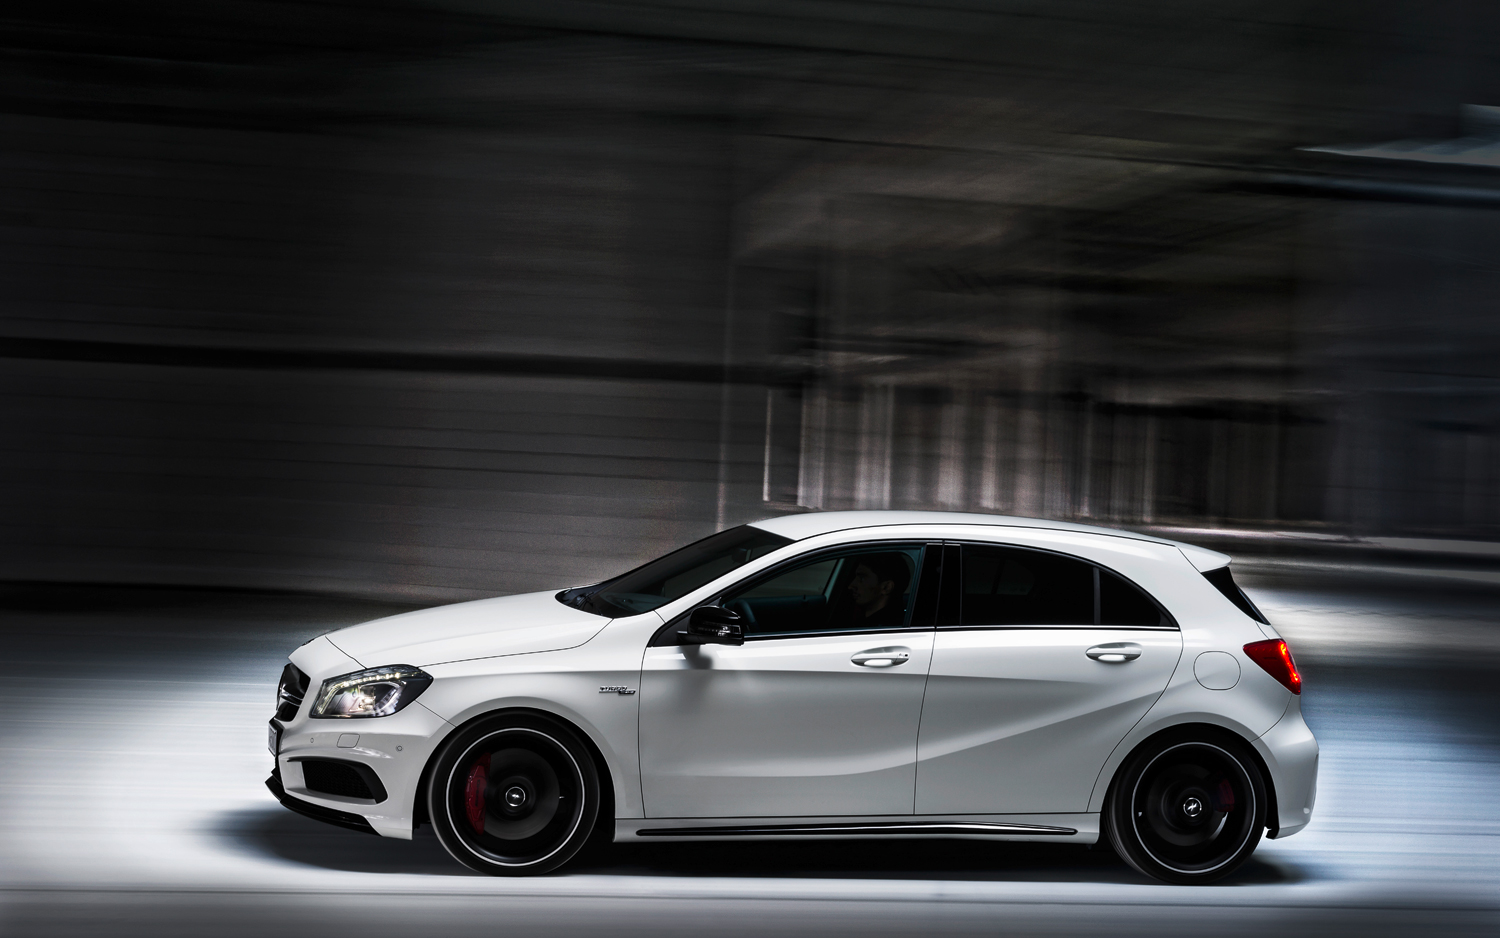 2014 mercedes benz a45 amg owner manual pdf for Mercedes benz a45 amg